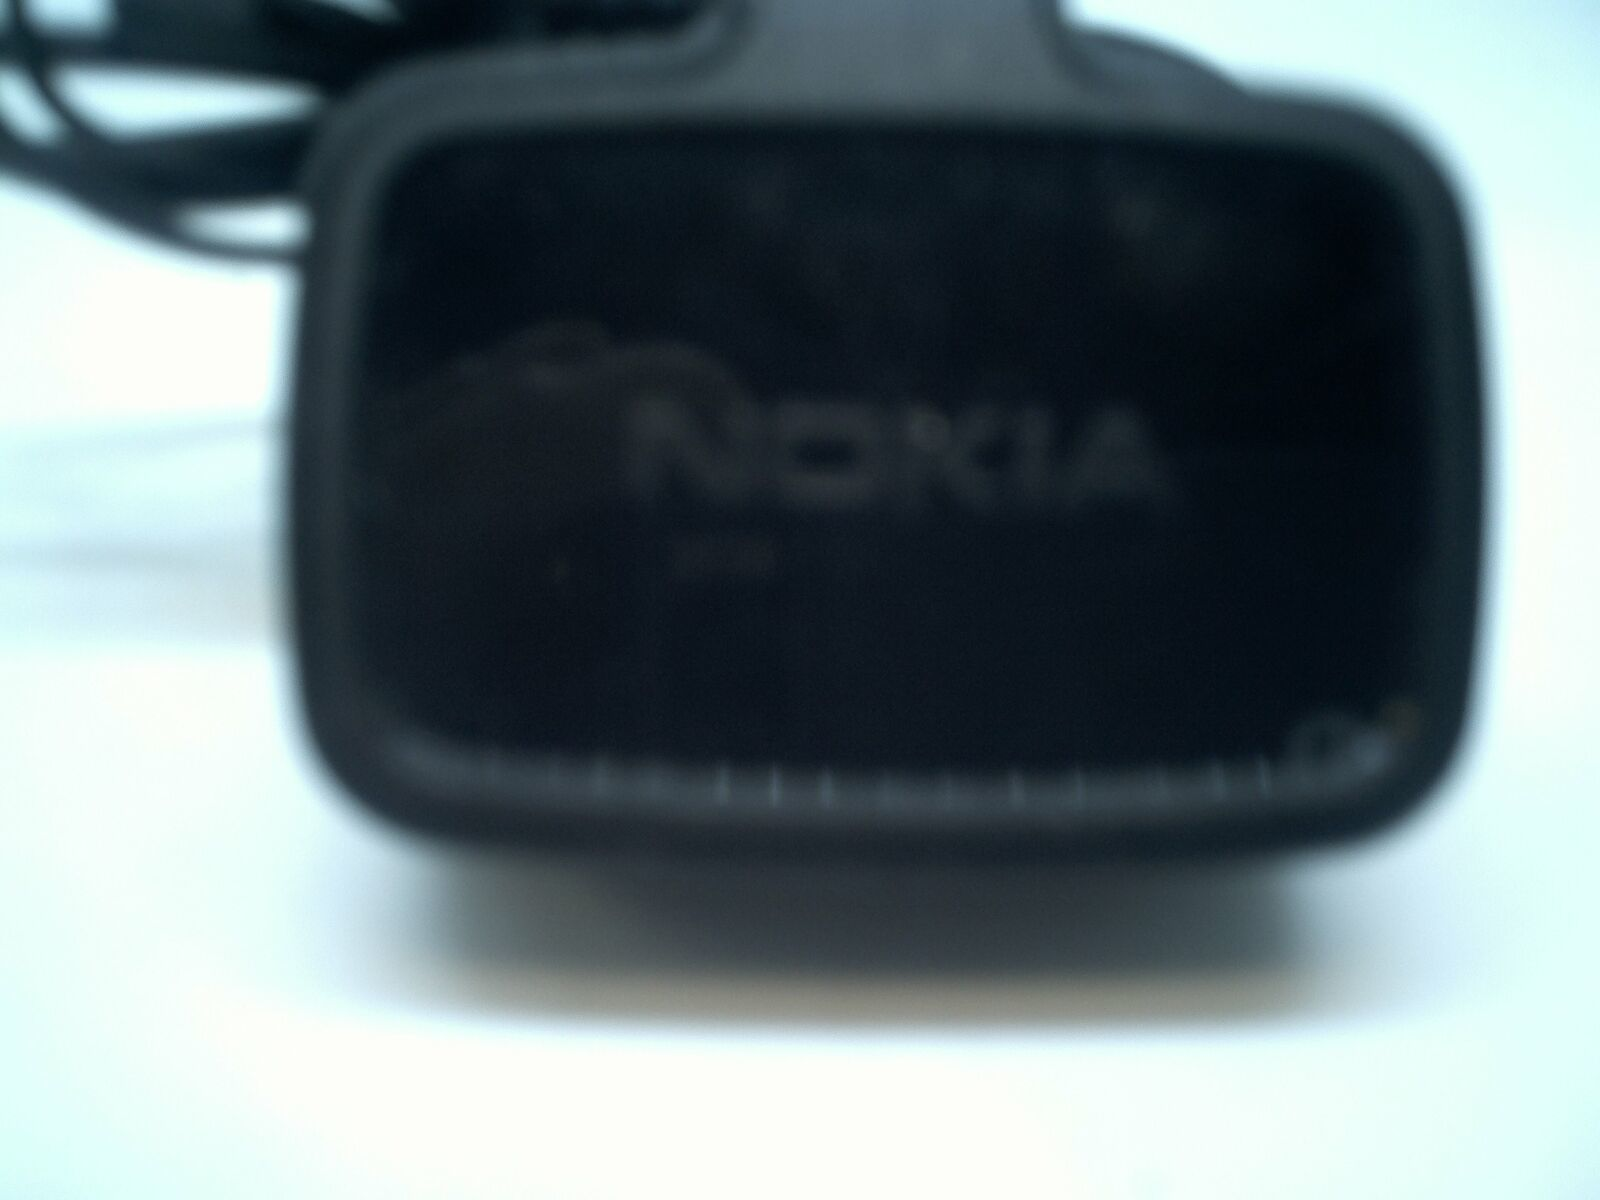 Nokia AC-5X Wall & Travel Charger 5VDC 800mA image 2